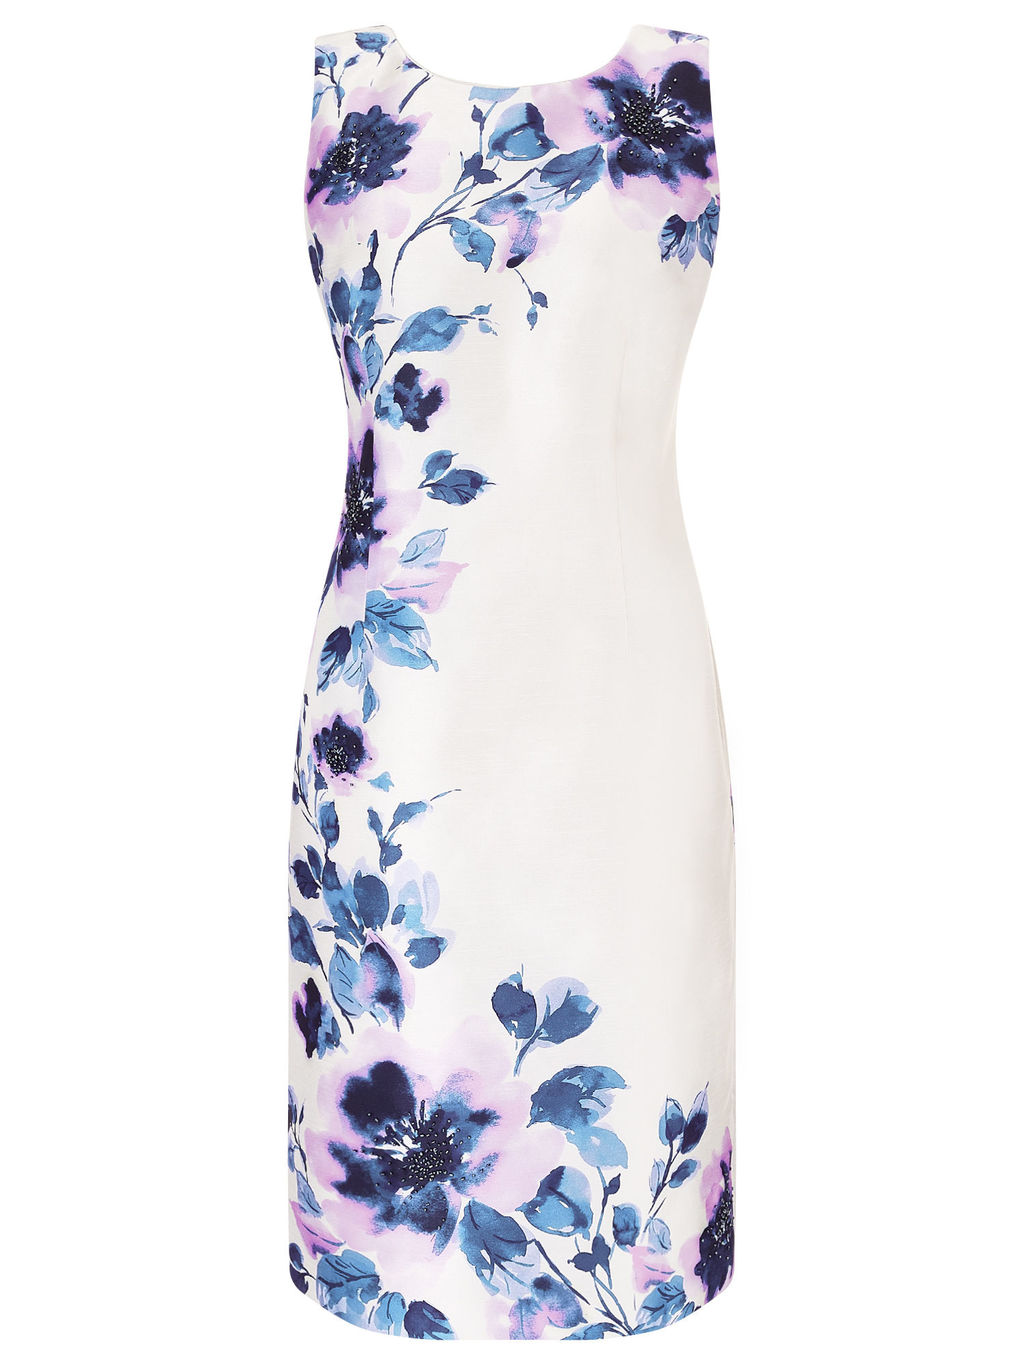 Peony Placement Print Dress, Cream/Multi - style: shift; neckline: round neck; sleeve style: standard vest straps/shoulder straps; fit: tailored/fitted; secondary colour: ivory/cream; predominant colour: royal blue; occasions: evening, occasion; length: just above the knee; fibres: polyester/polyamide - 100%; sleeve length: sleeveless; texture group: structured shiny - satin/tafetta/silk etc.; pattern type: fabric; pattern size: big & busy; pattern: florals; multicoloured: multicoloured; season: a/w 2015